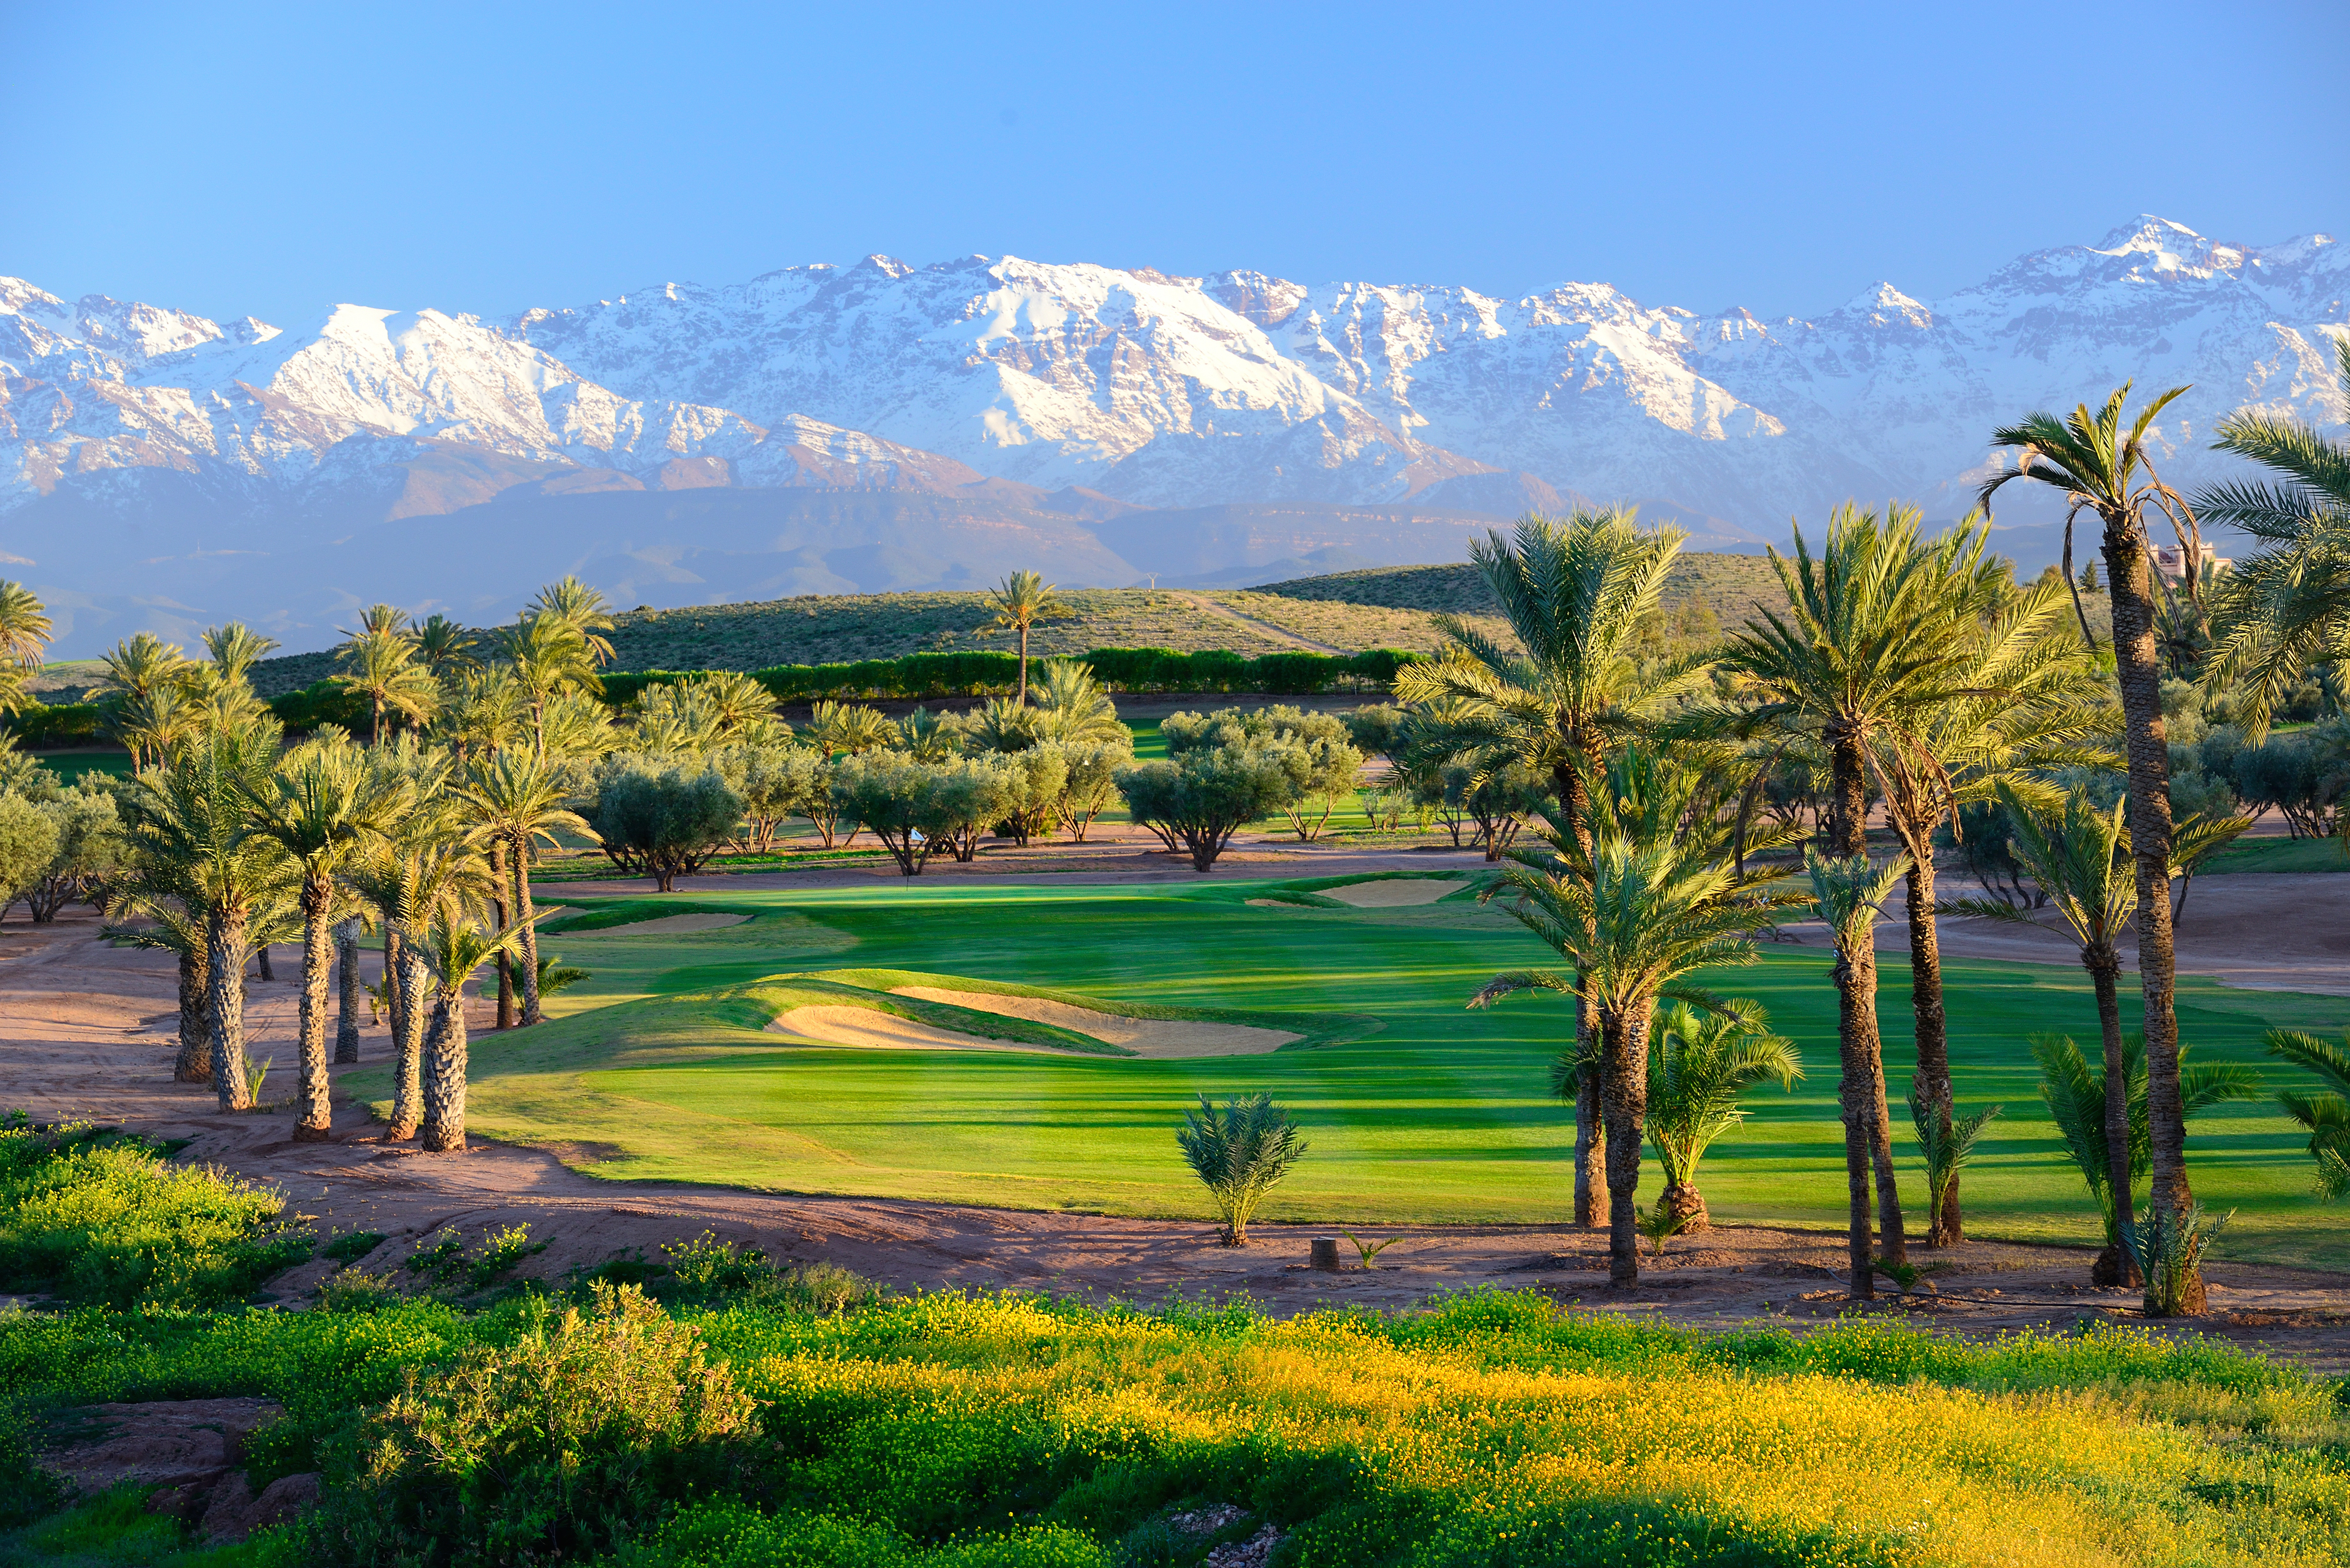 Assoufid tracks the natural folds of the rolling foothills of the Atlas Mountains